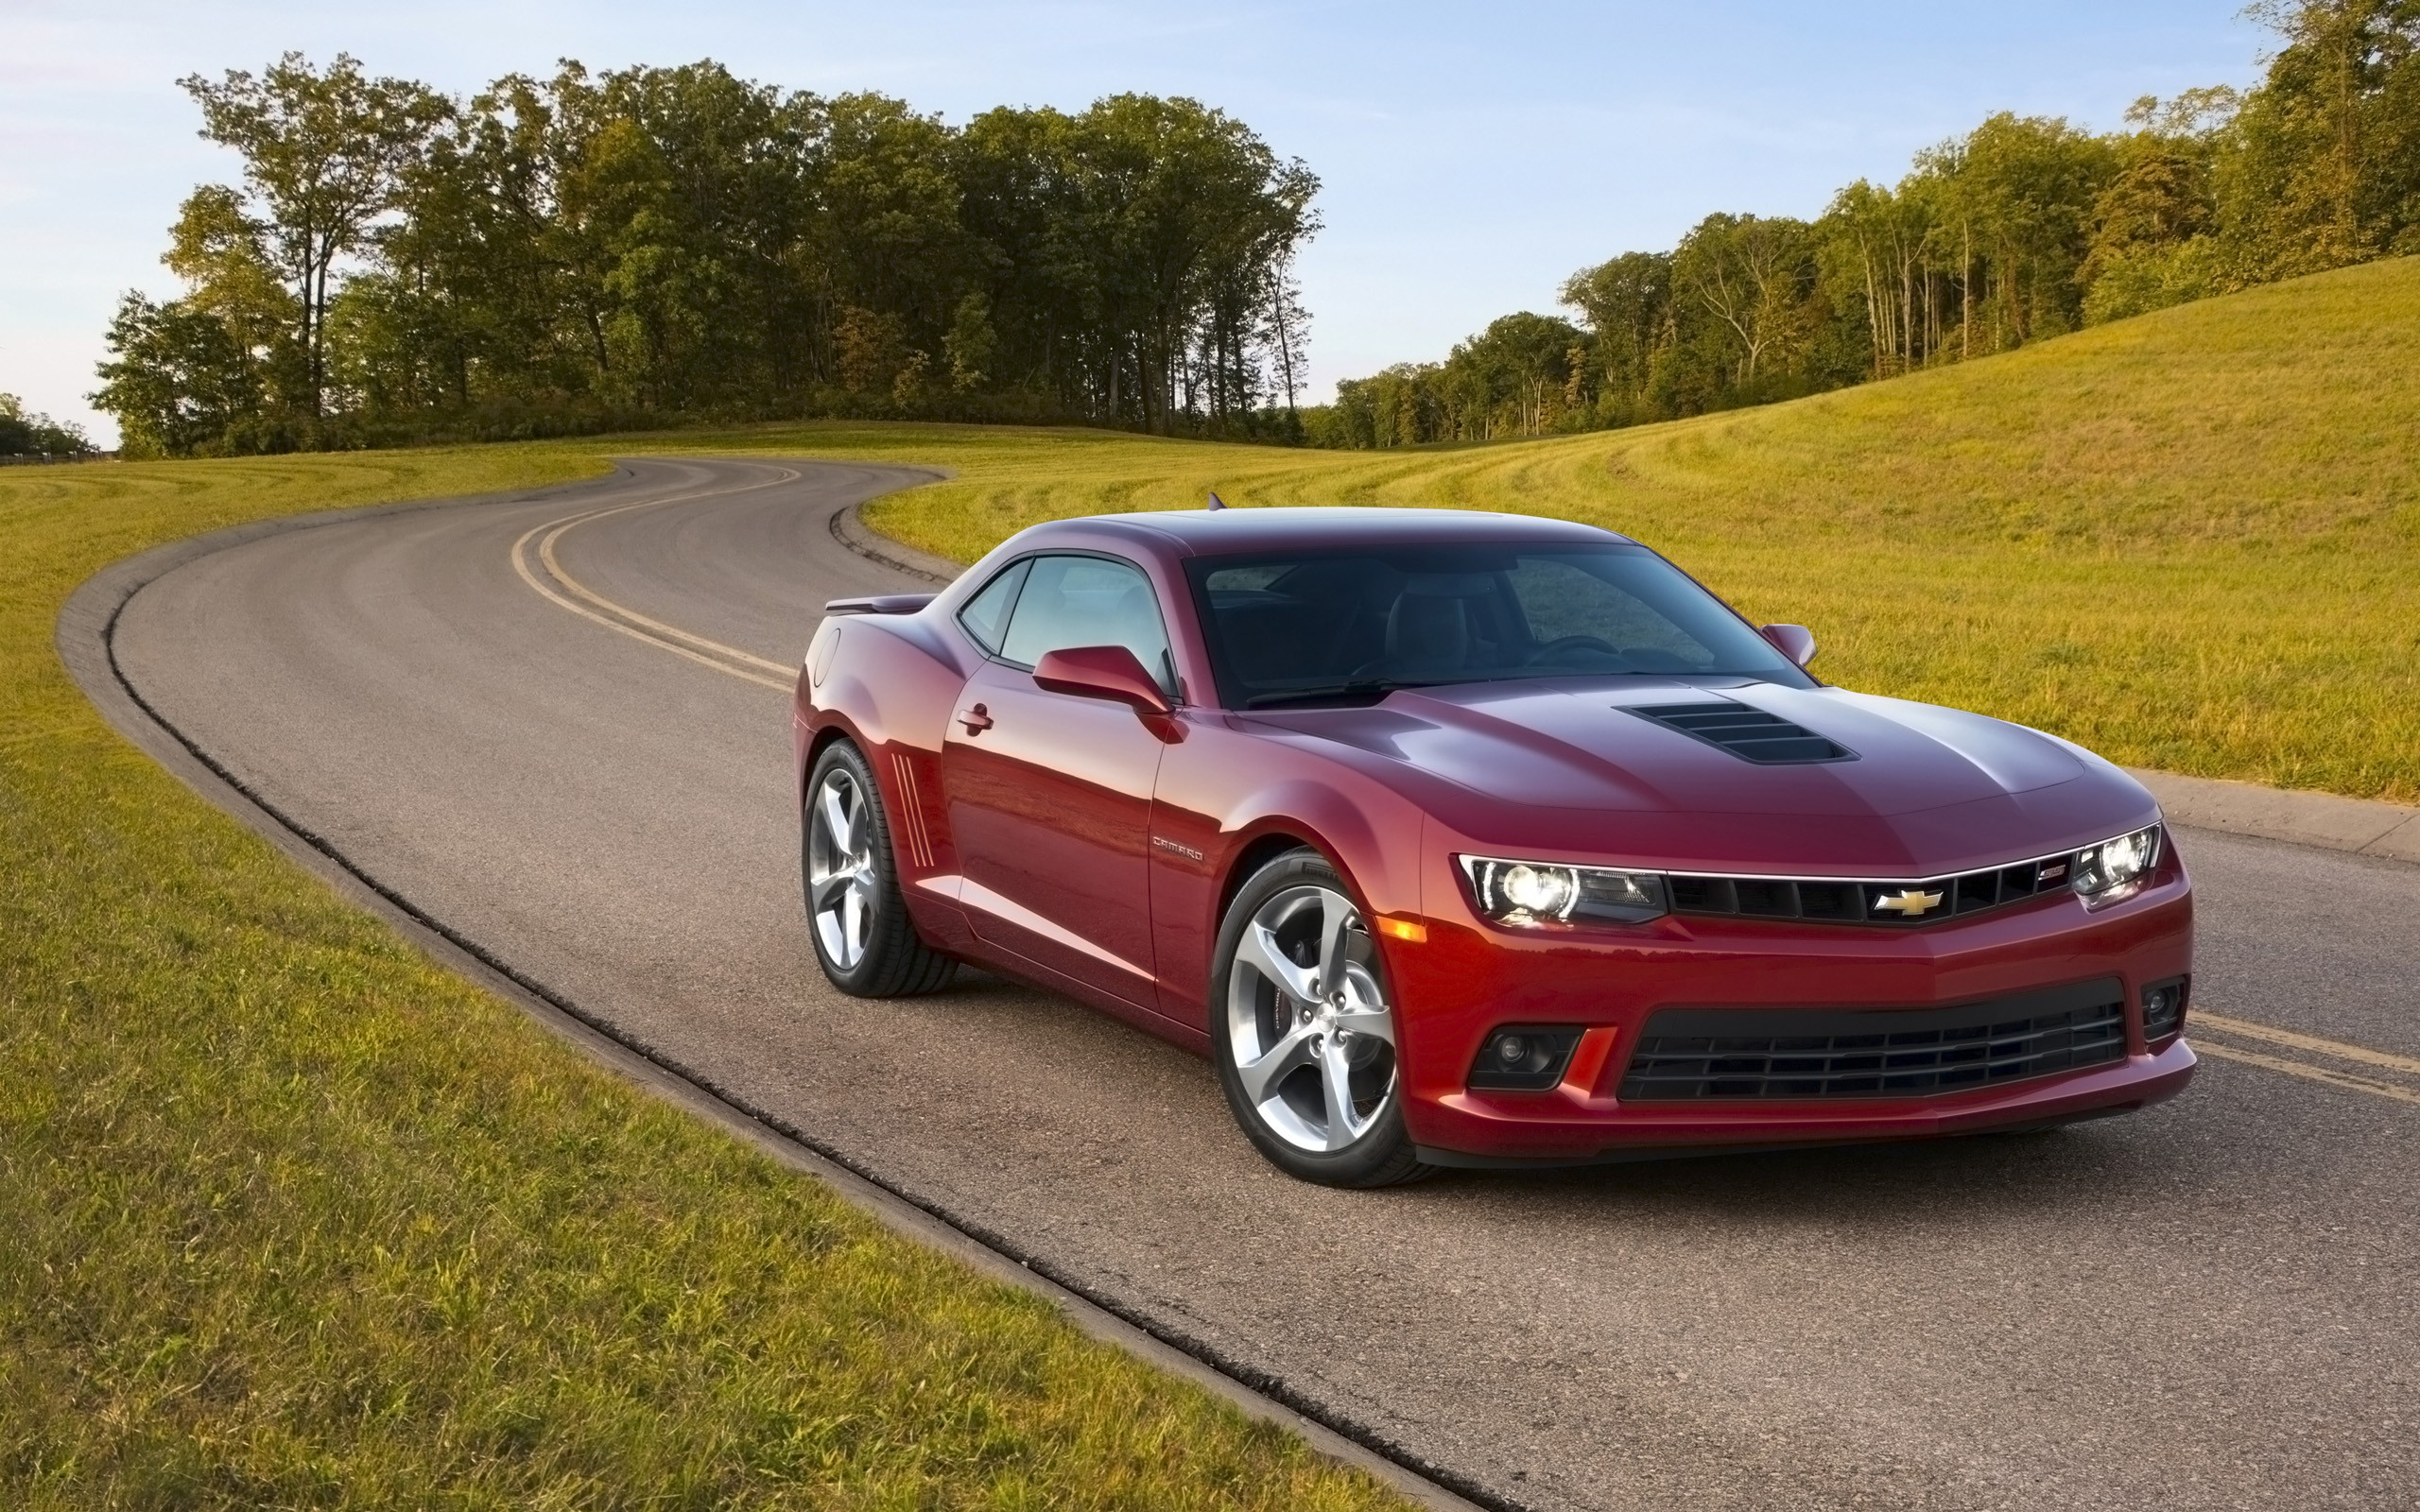 2015 Chevrolet Camaro Ss Coupe Wallpaper Hd Car Wallpapers Id 4593